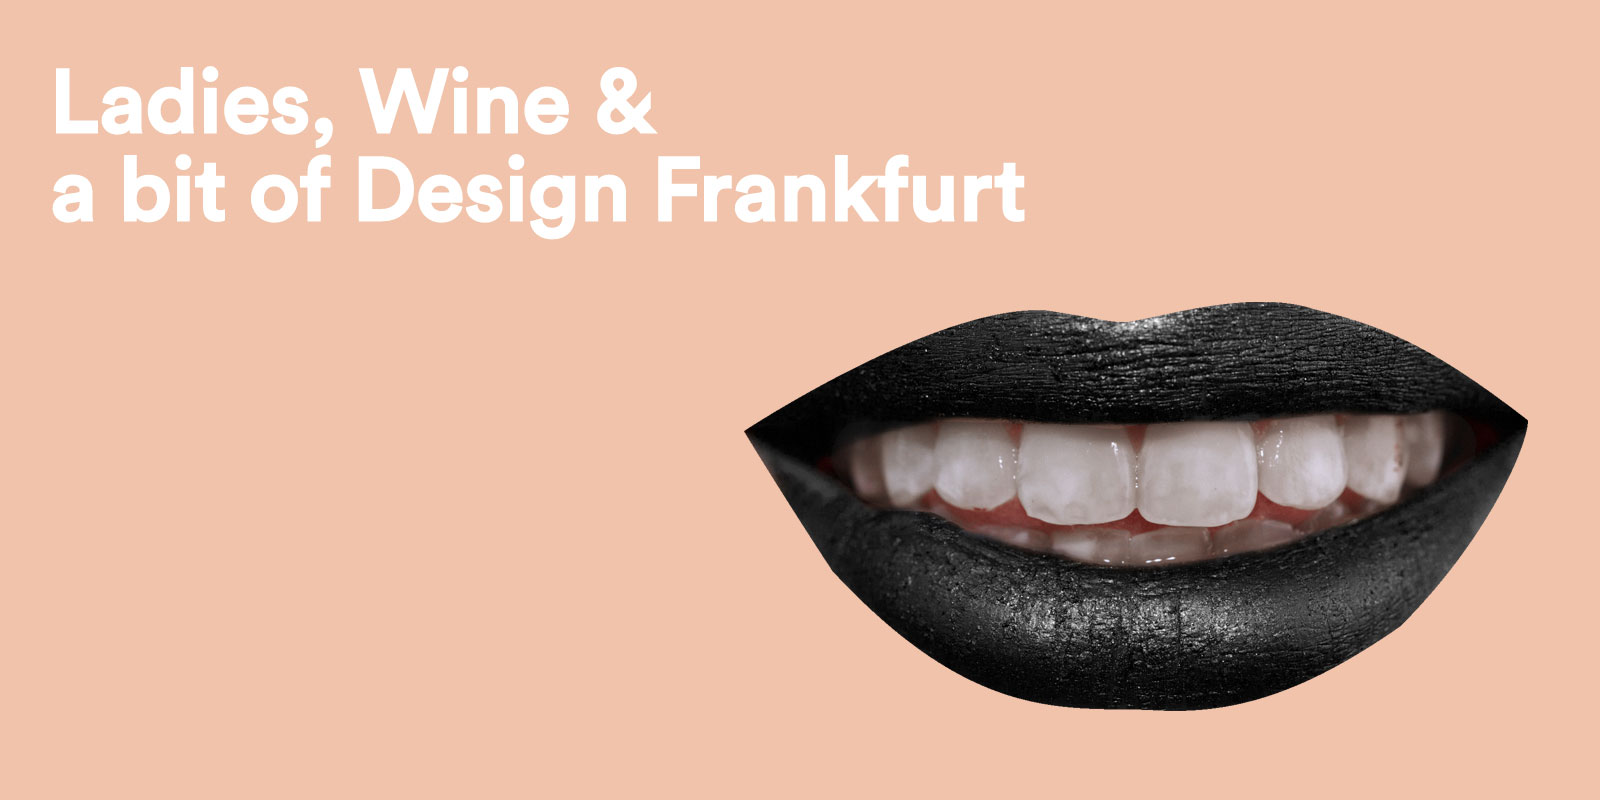 Ladies, Wine & Design Frankfurt